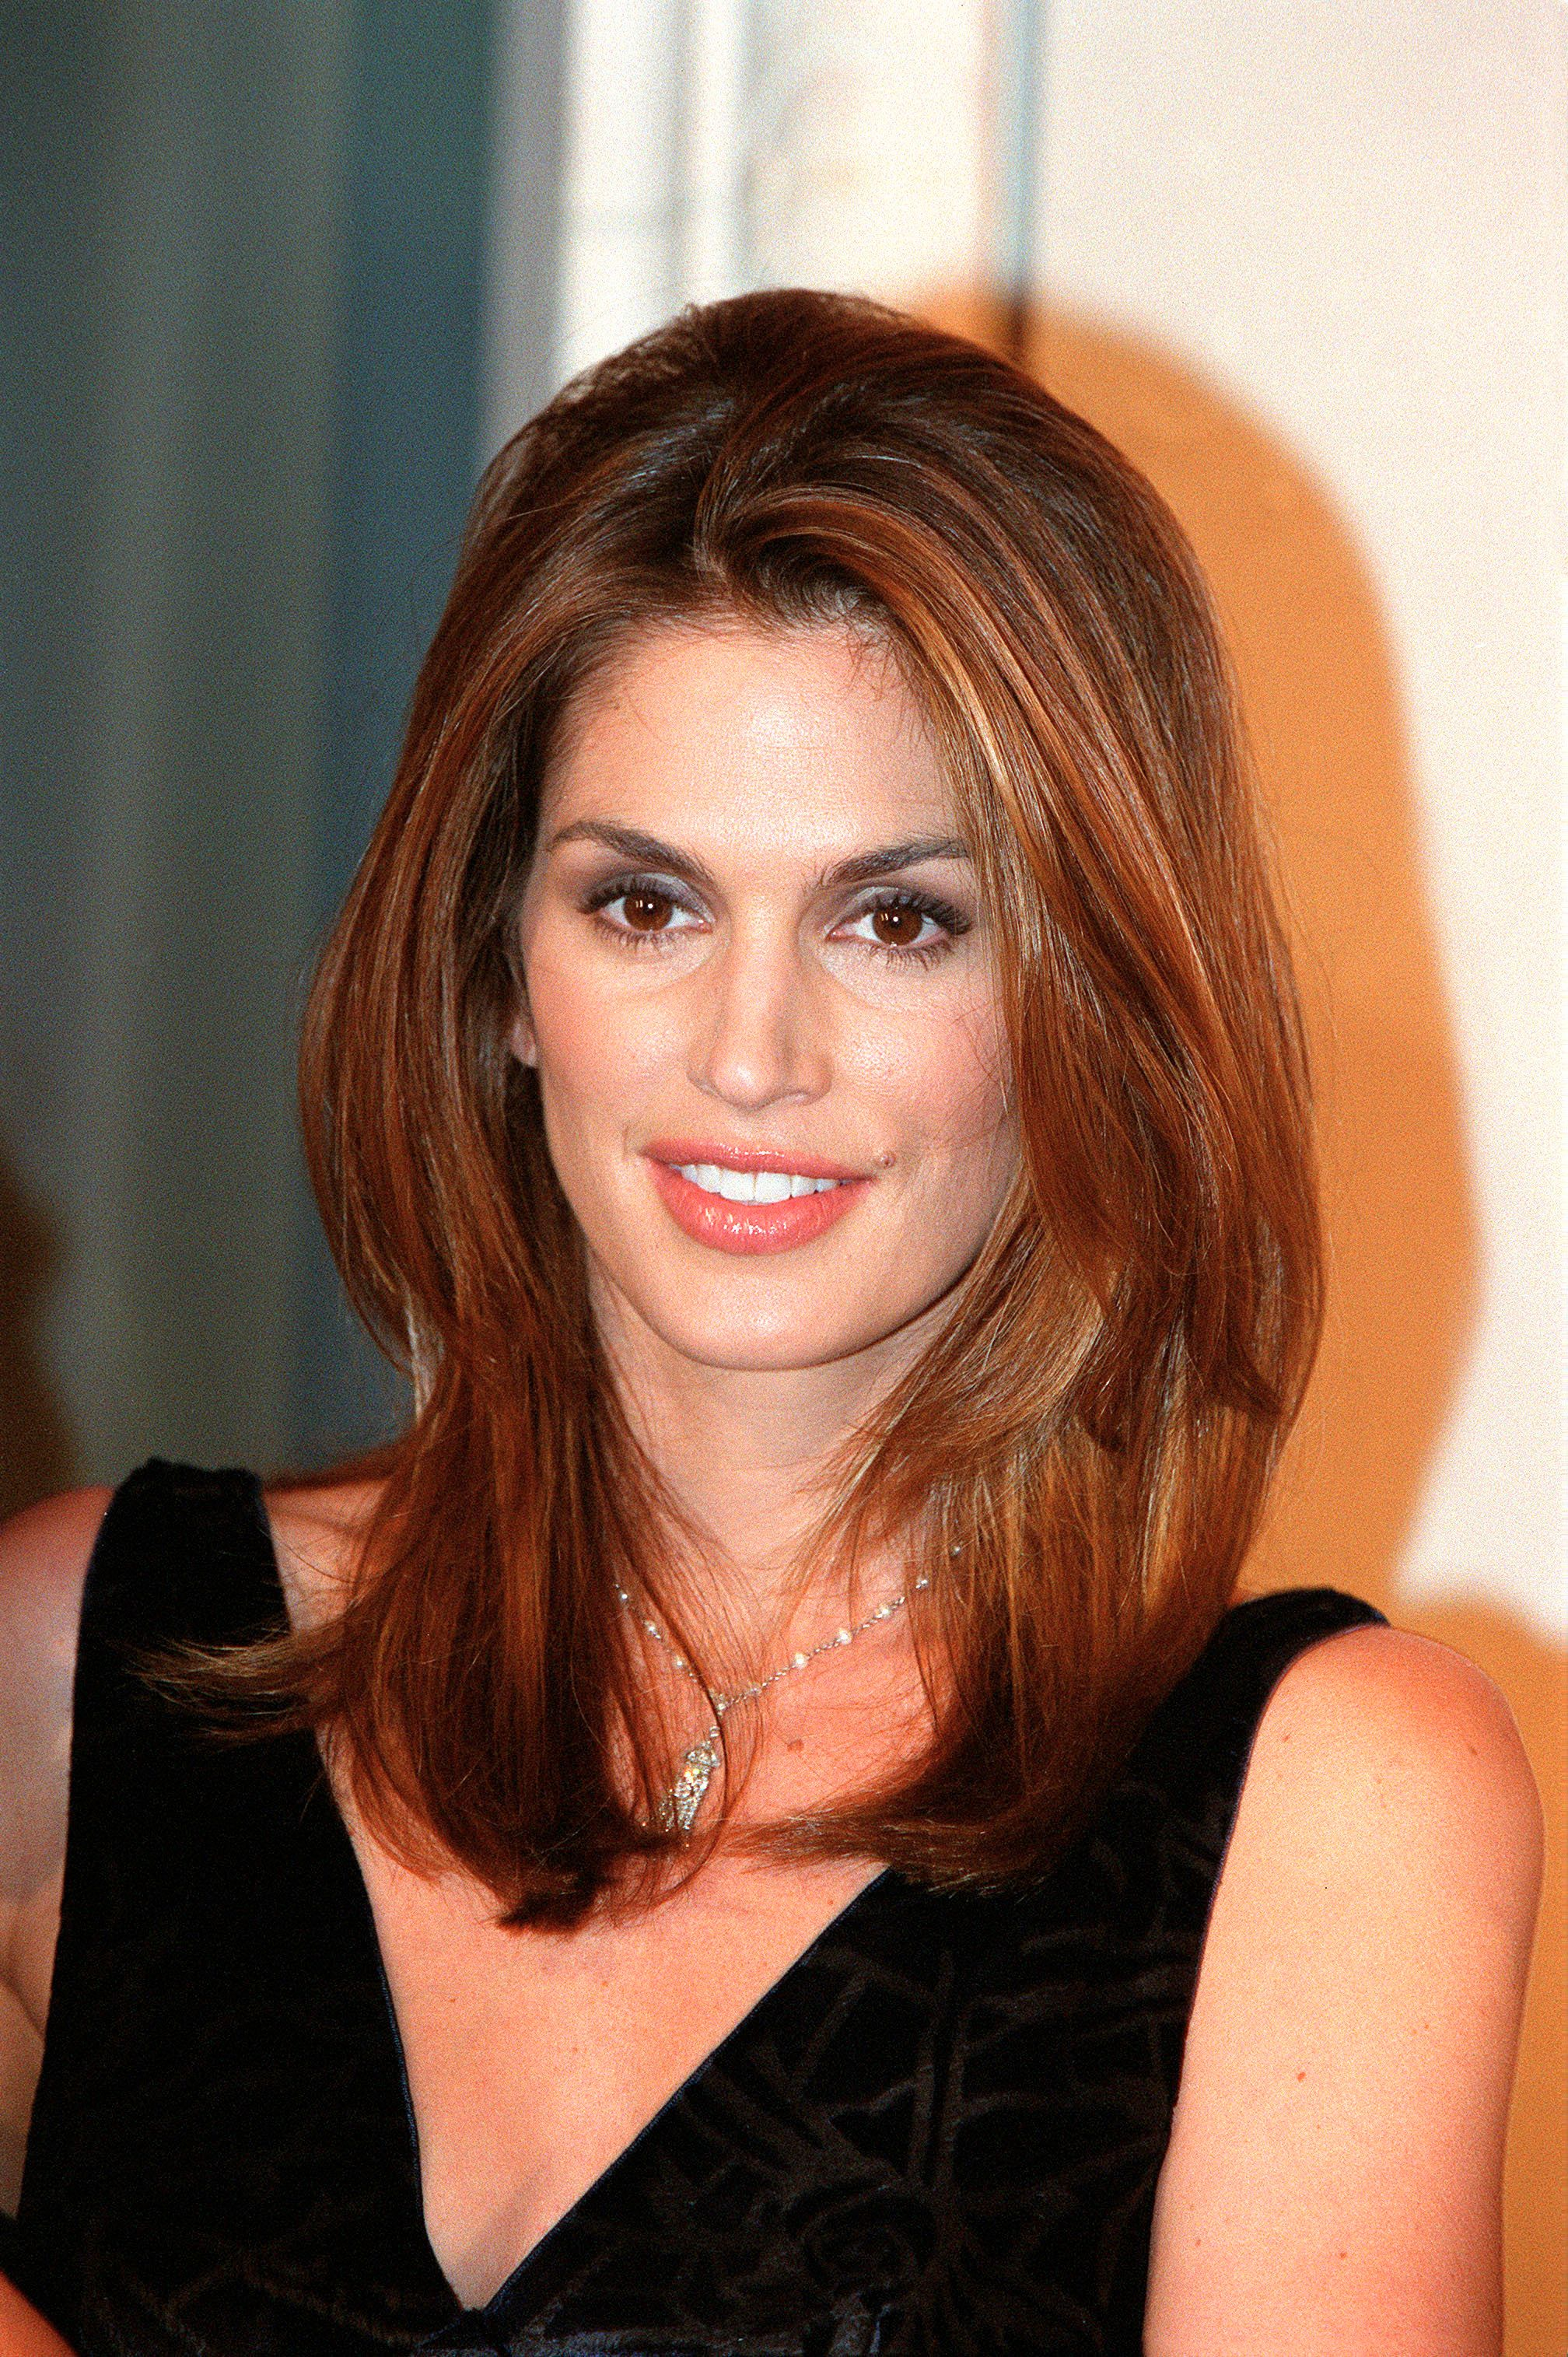 FRANCE - NOVEMBER 29:  Cindy Crawford presents new Omega watch in Paris, France on November 29, 1999.  (Photo by Pool BENAINOUS/SCORCELLETTI/Gamma-Rapho via Getty Images)